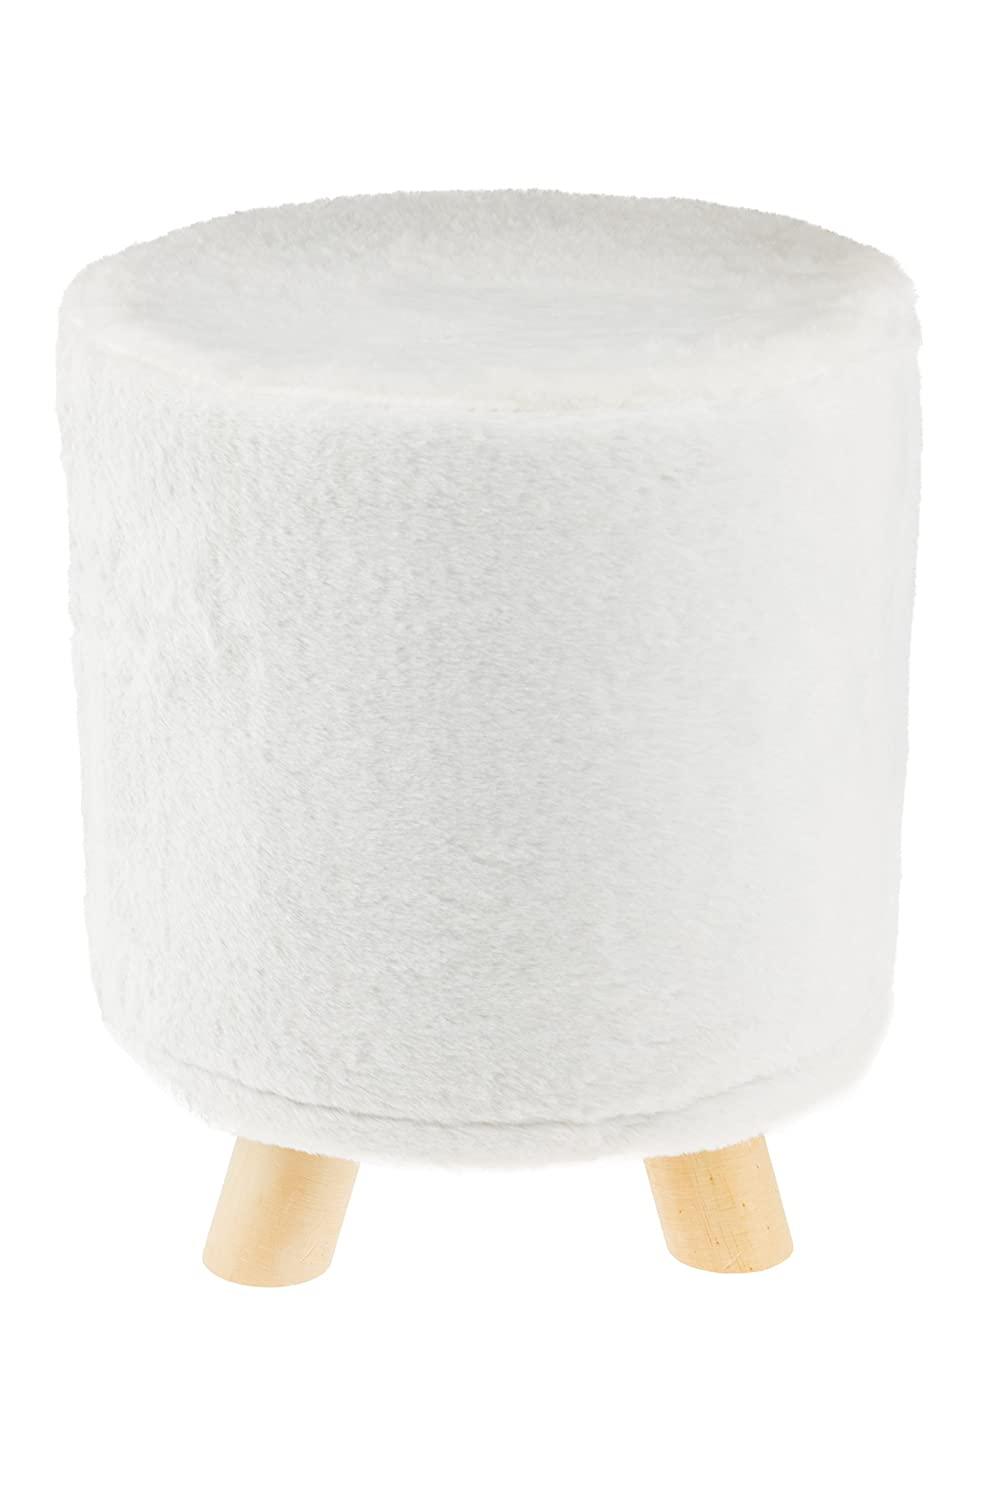 Astonishing Premium Furry White Round Foot Stool Real Wood Legs Stands 12X12X13 Inches Gmtry Best Dining Table And Chair Ideas Images Gmtryco